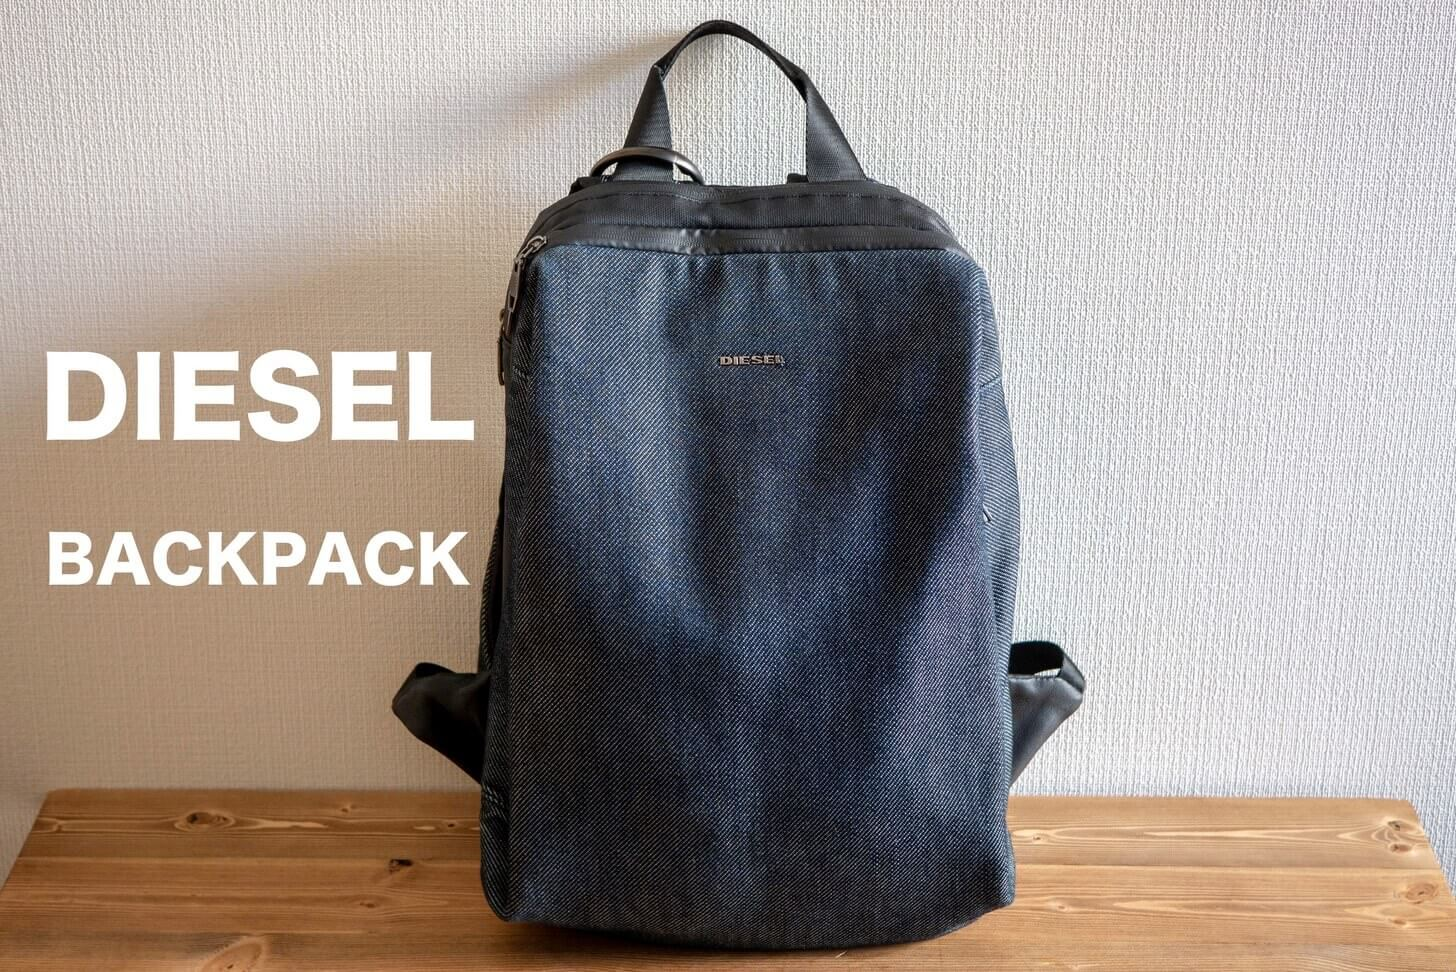 Diesel backpack1